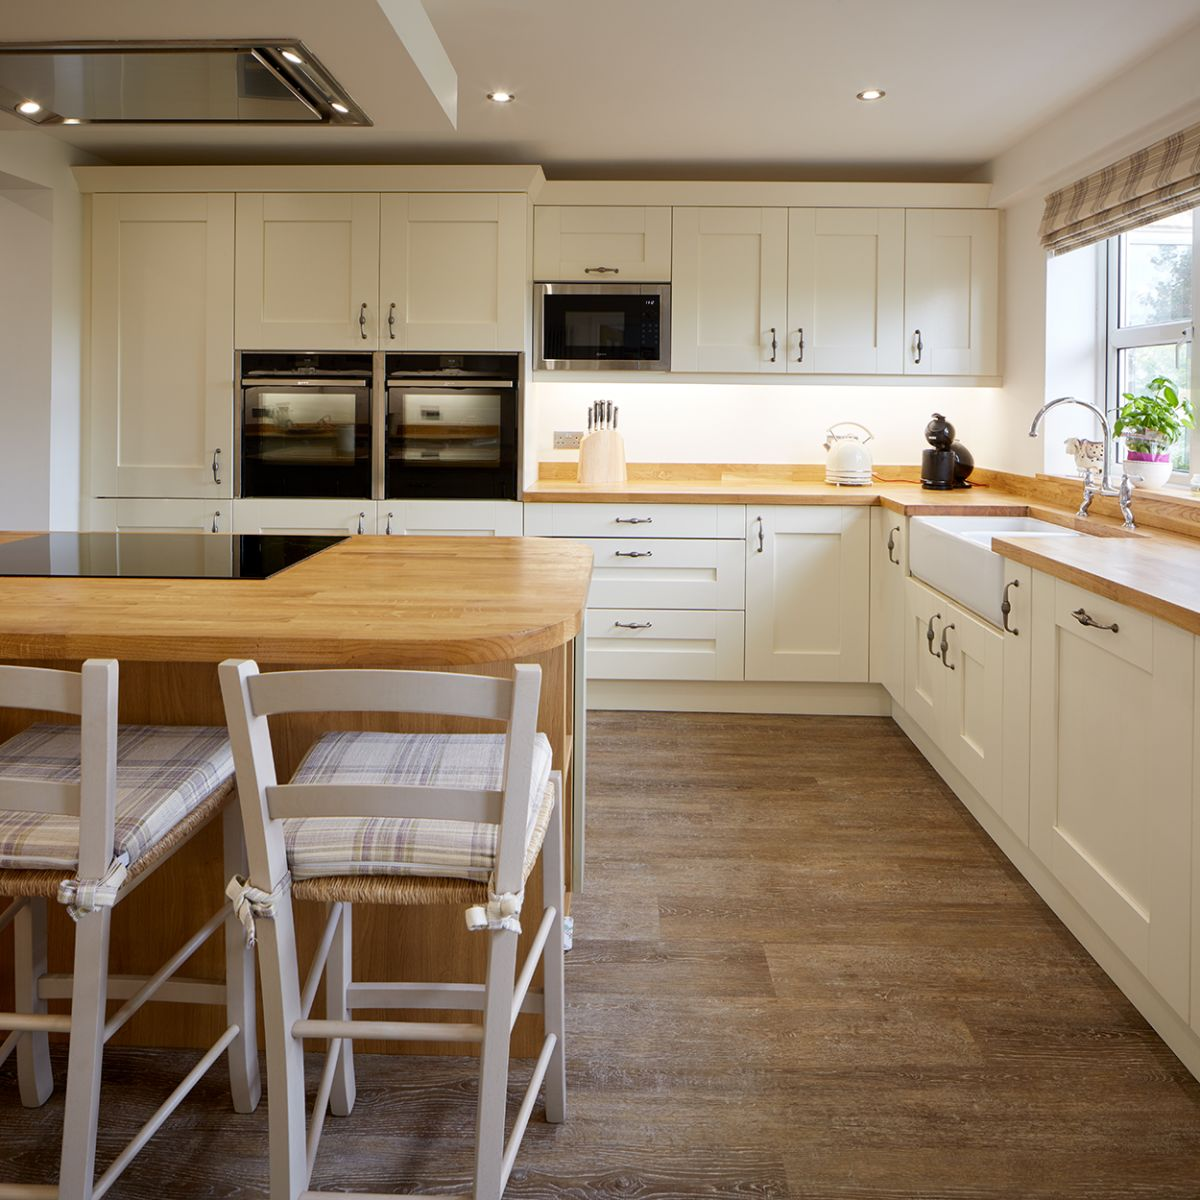 Hardwood worktops in a cream bespoke fitted kitchen.